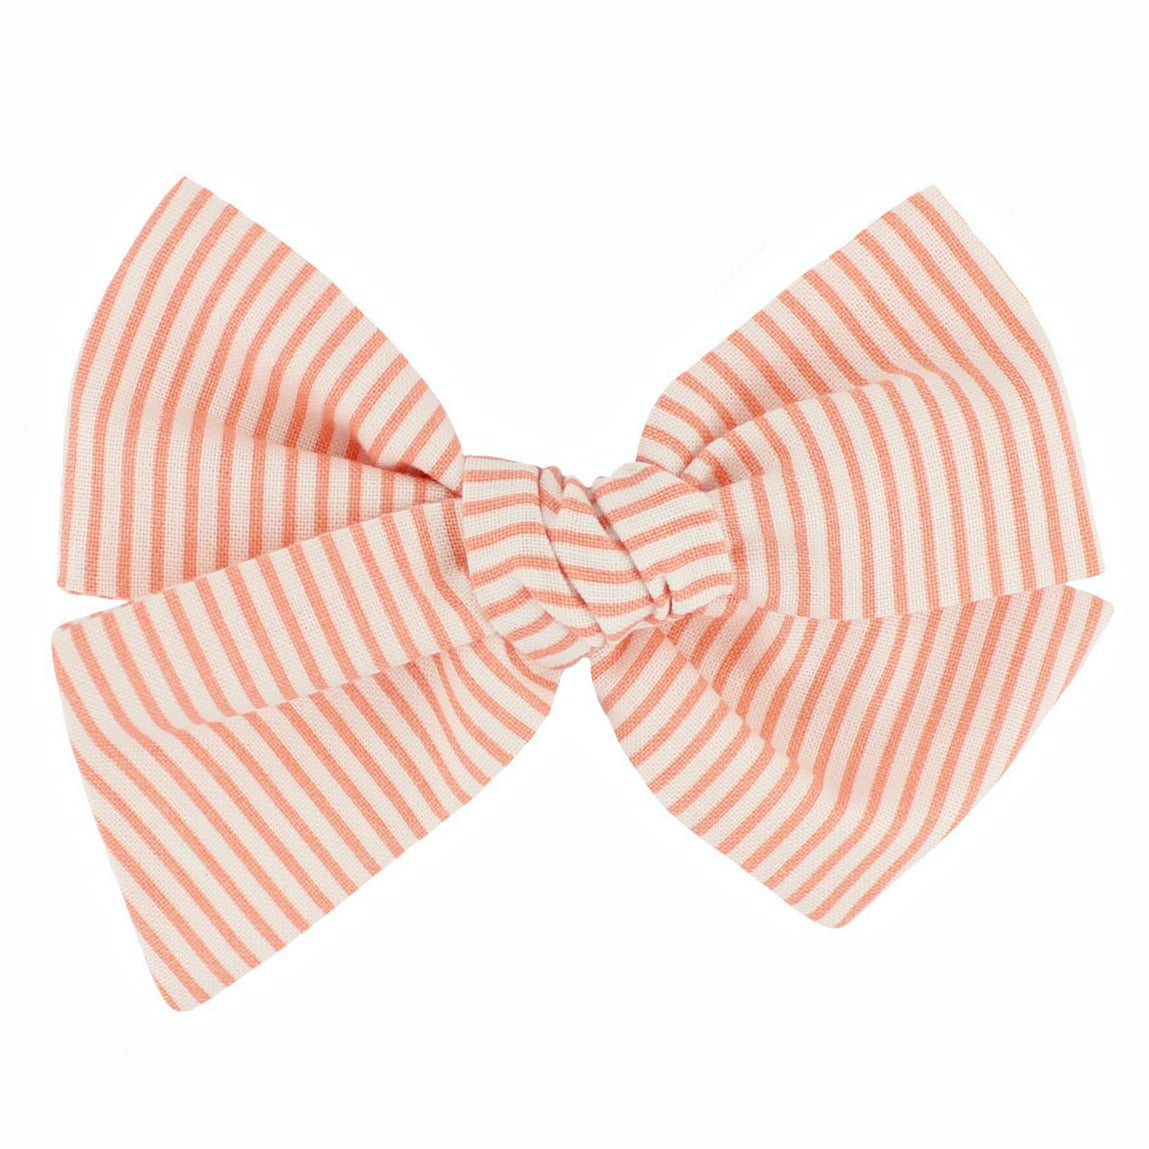 Oversized Pixie Bow - Creamsicle Stripes